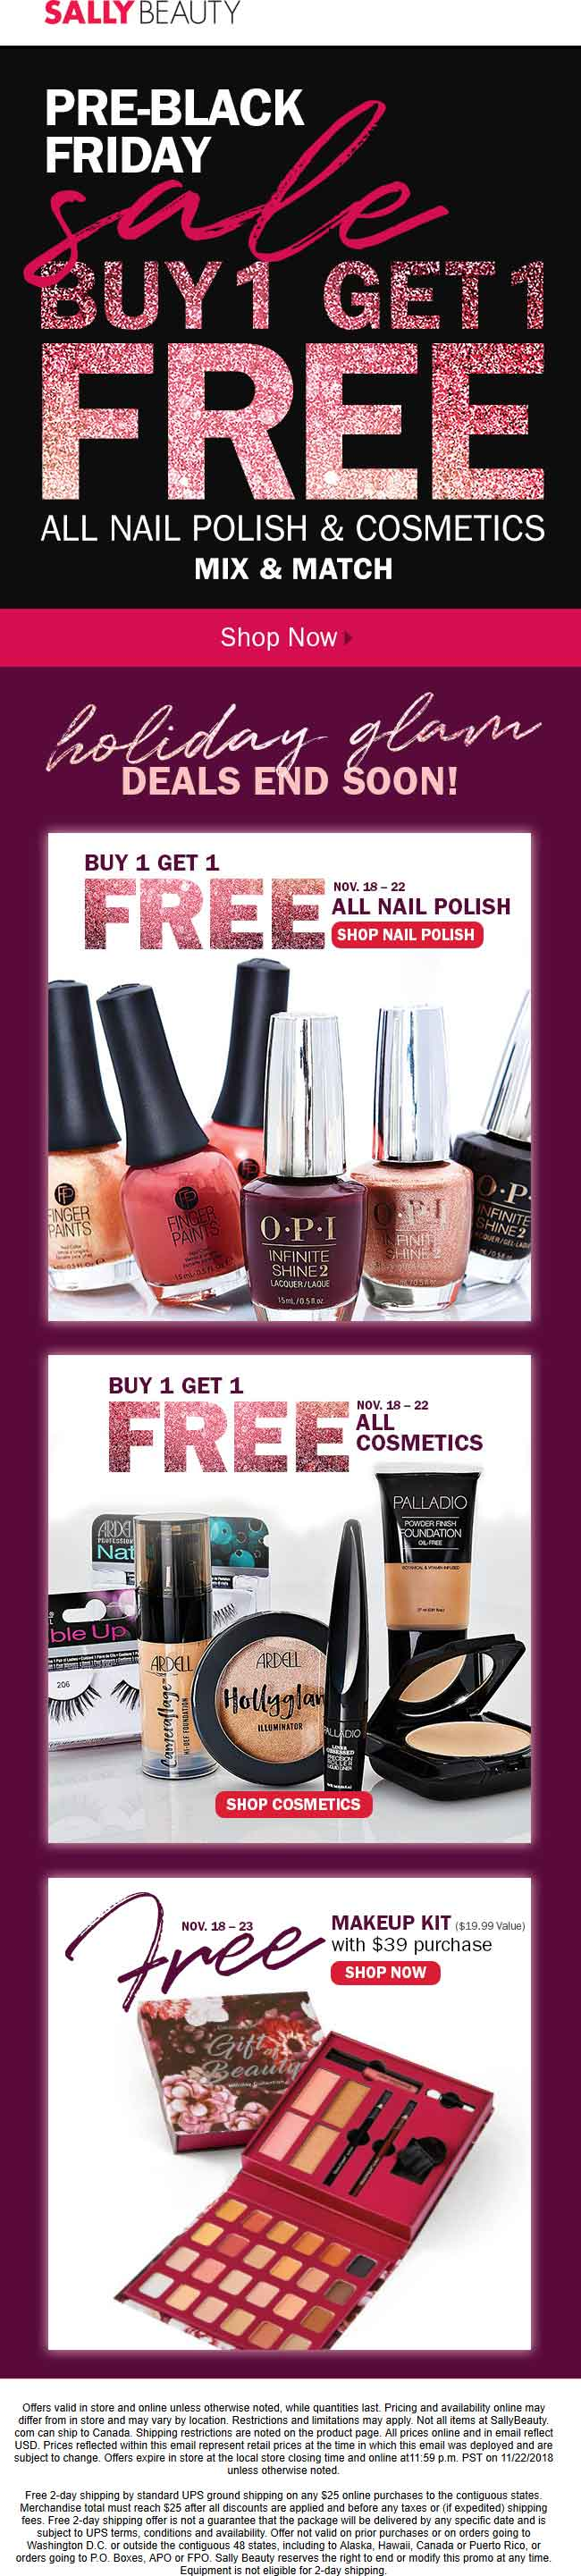 Sally Beauty Coupon July 2019 Second cosmetic or nail polish free at Sally Beauty, ditto online